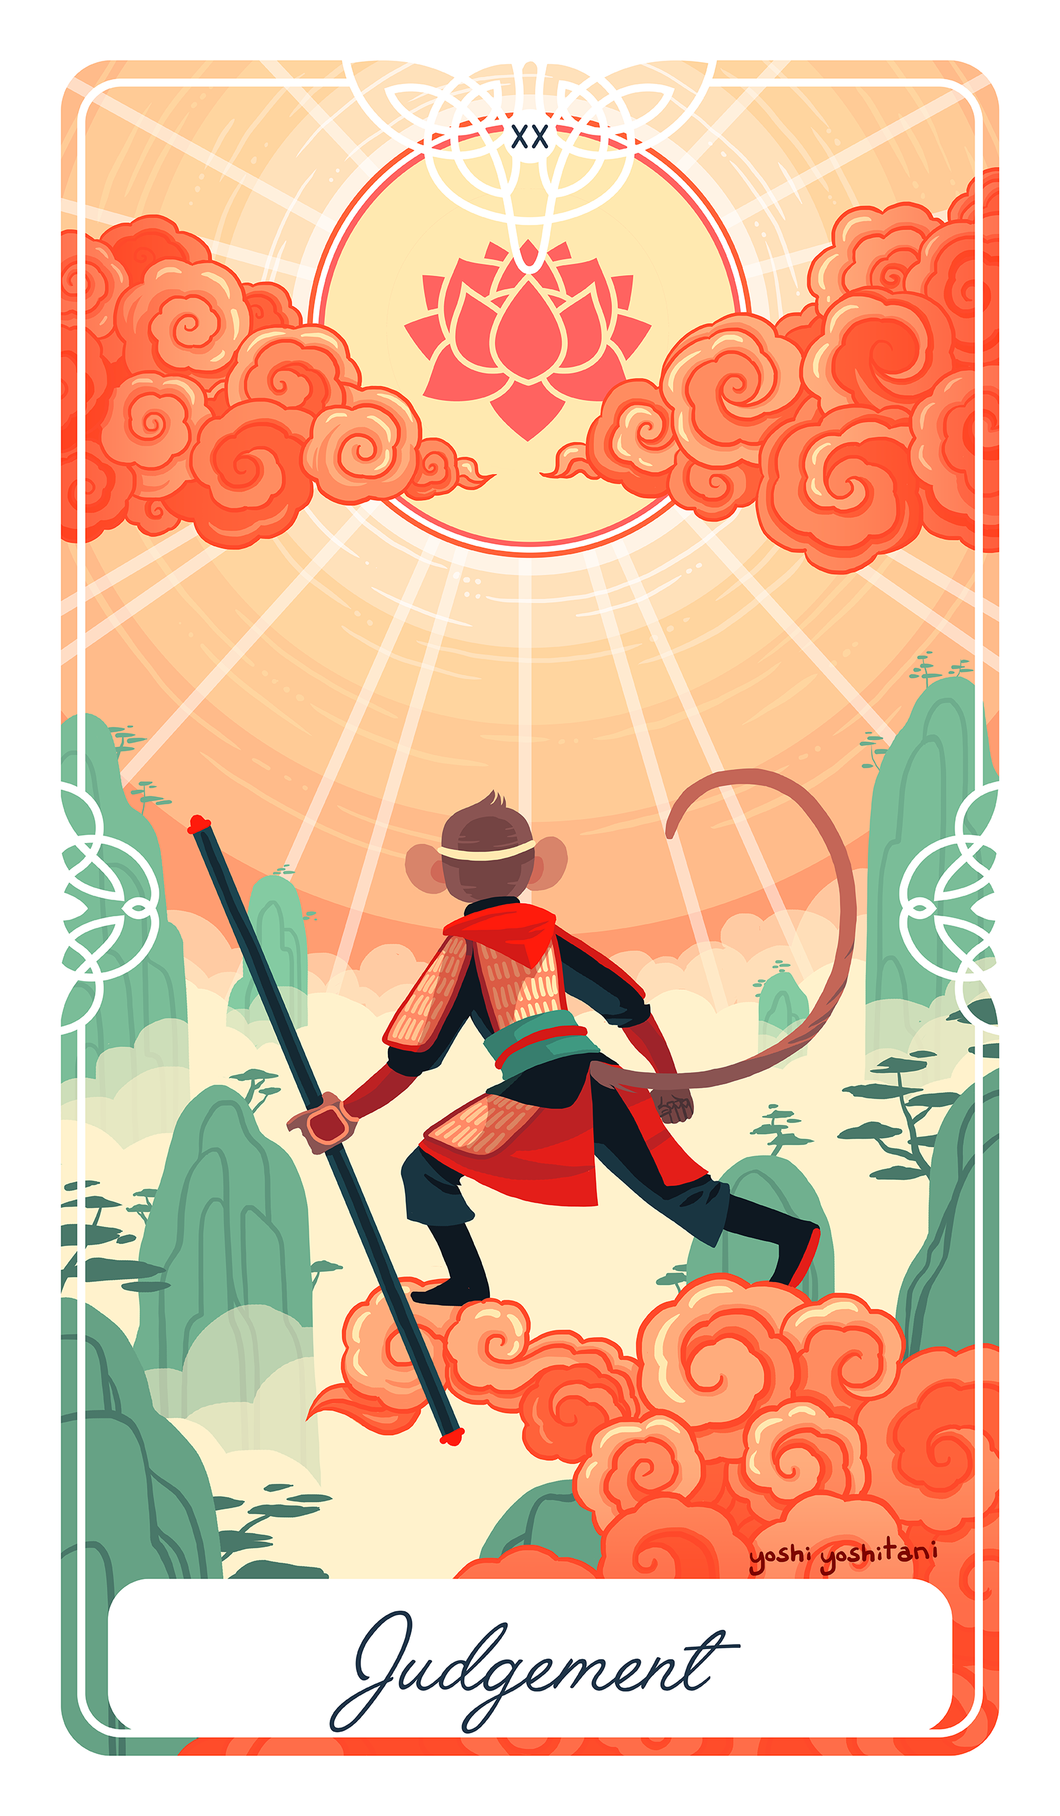 Judgement Tarot Print